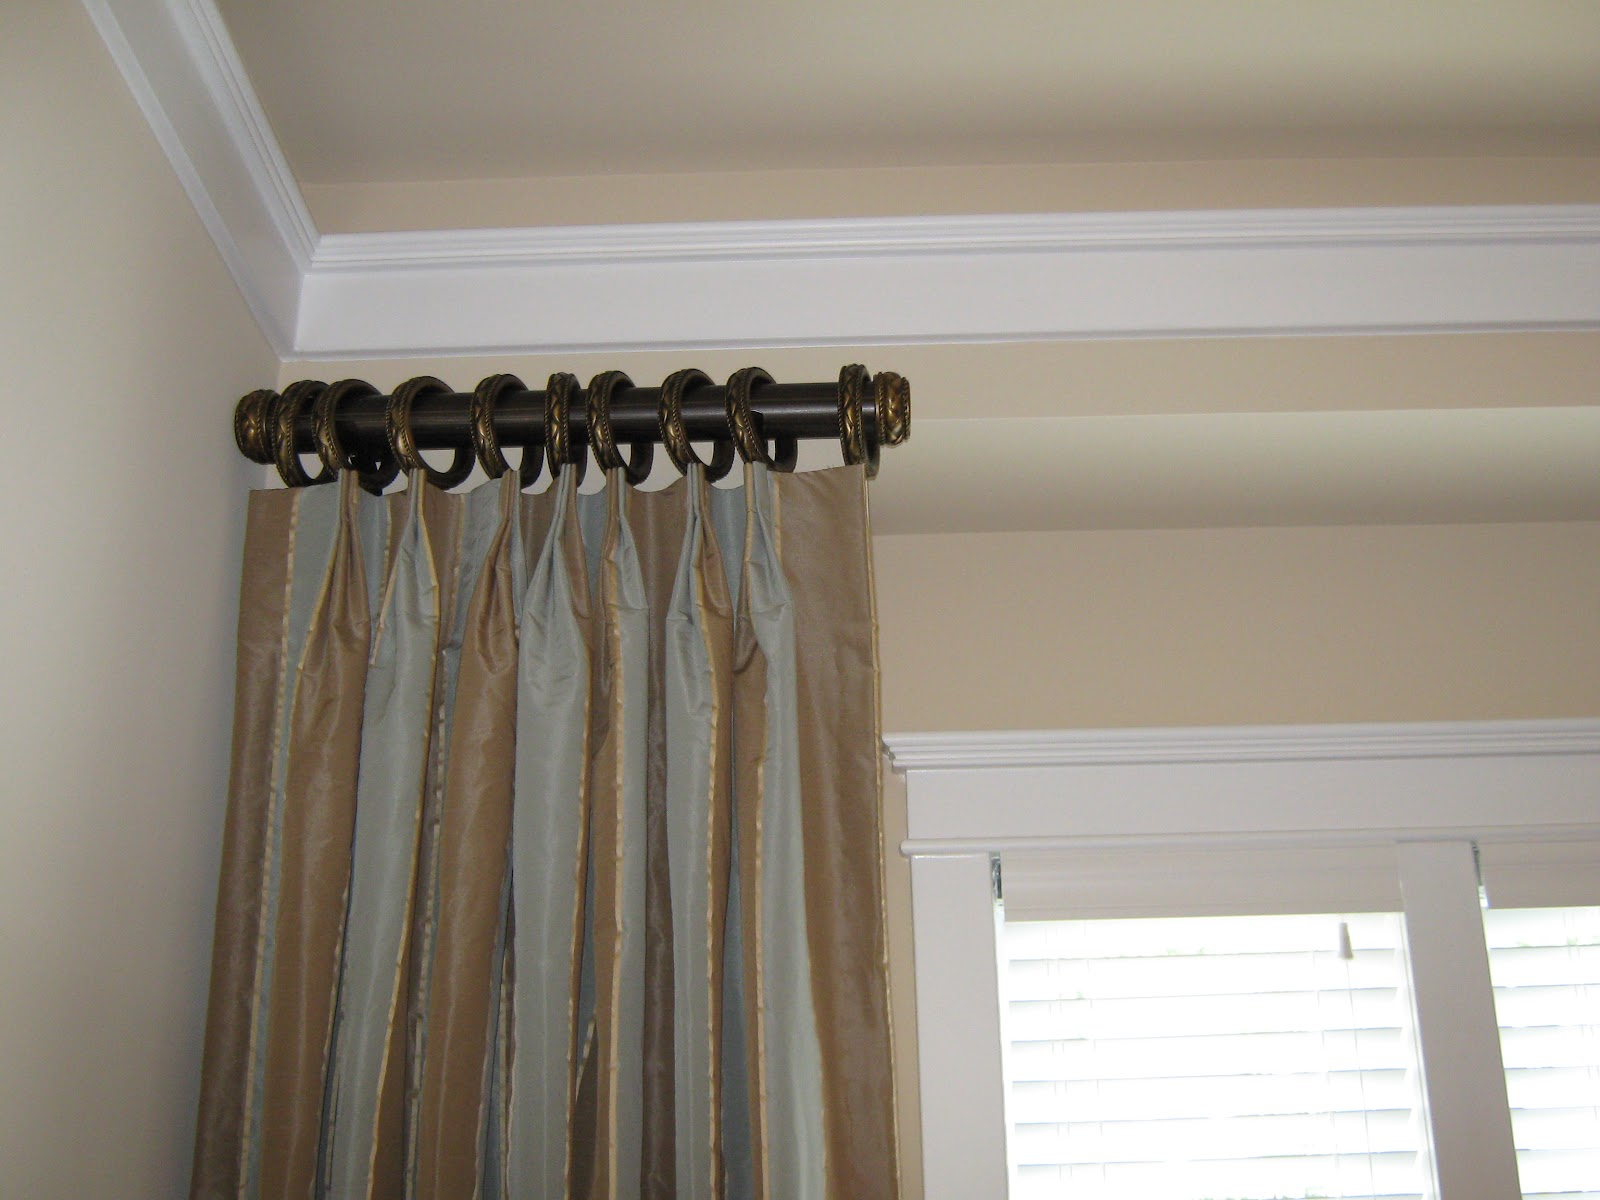 Outdoor Curtain Track System Wooden Window Curtain Rods